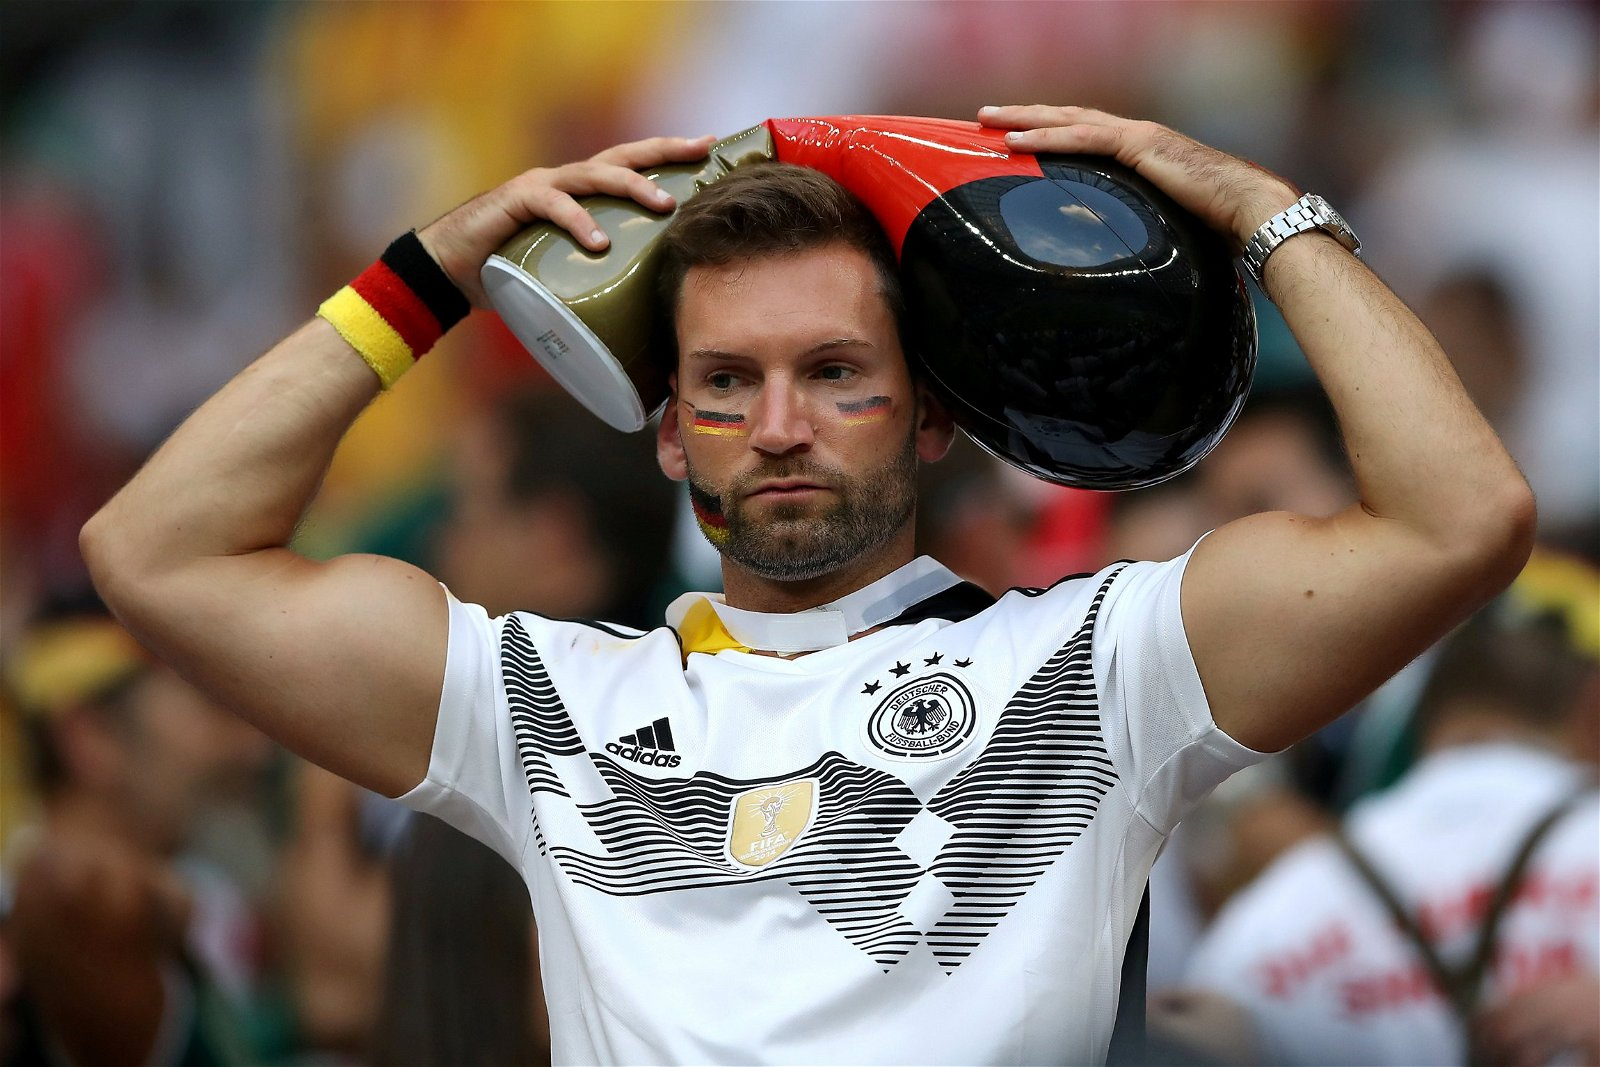 Germany fan looks distraught after losing against Mexico